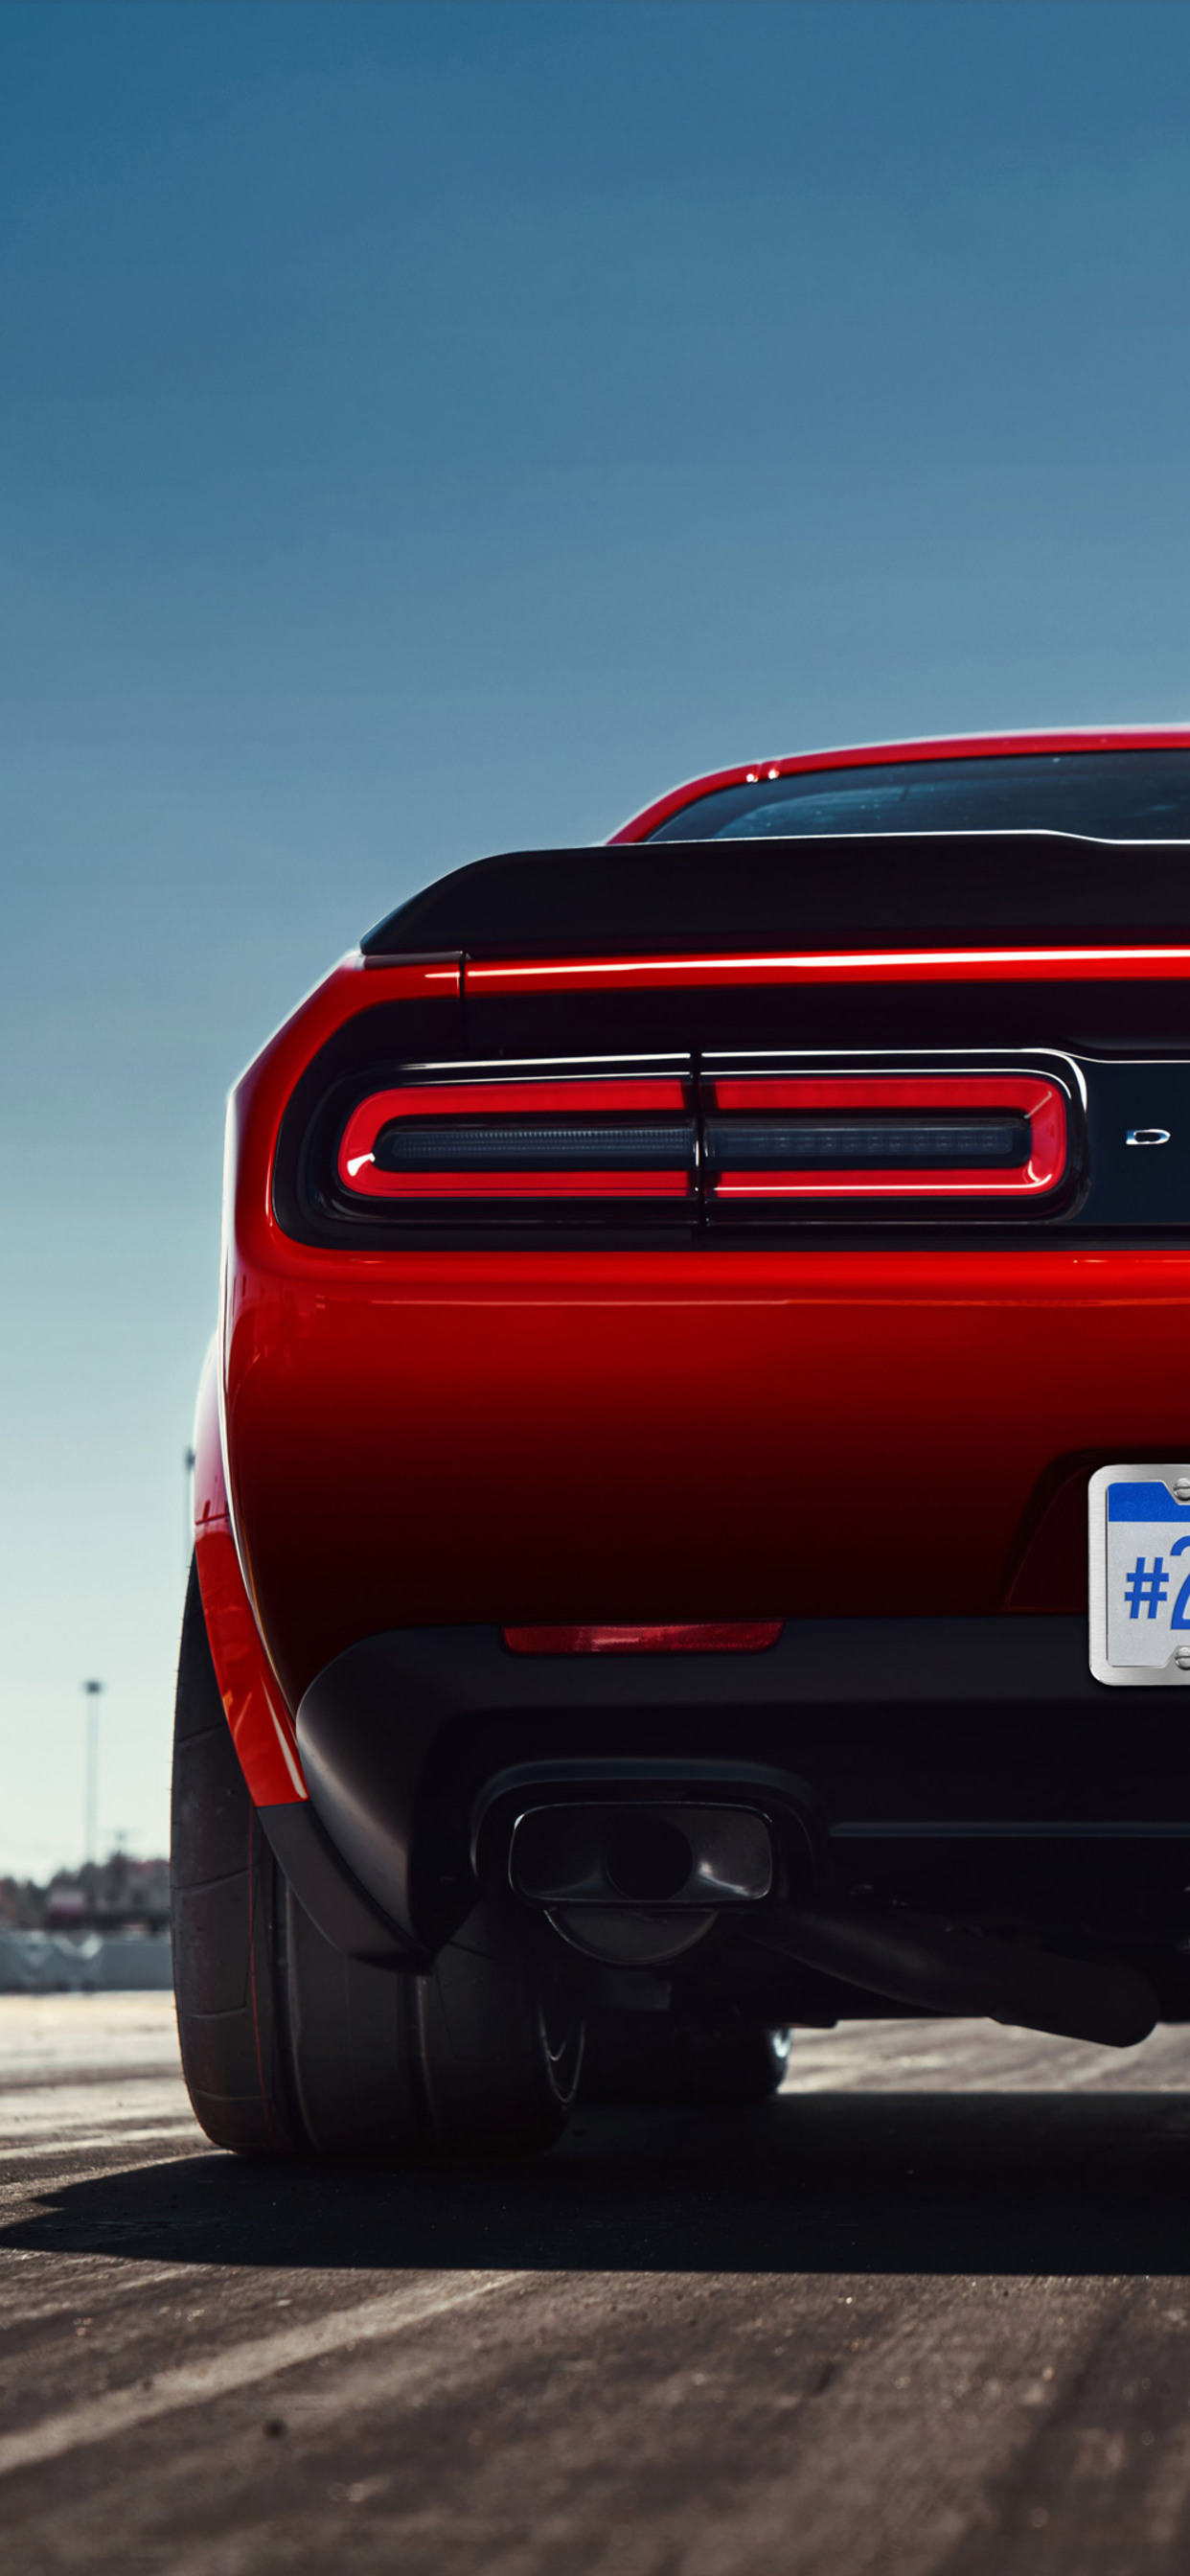 1242x2688 2018 Dodge Challenger Srt Iphone Xs Max Hd 4k Wallpapers Images Backgrounds Photos And Pictures